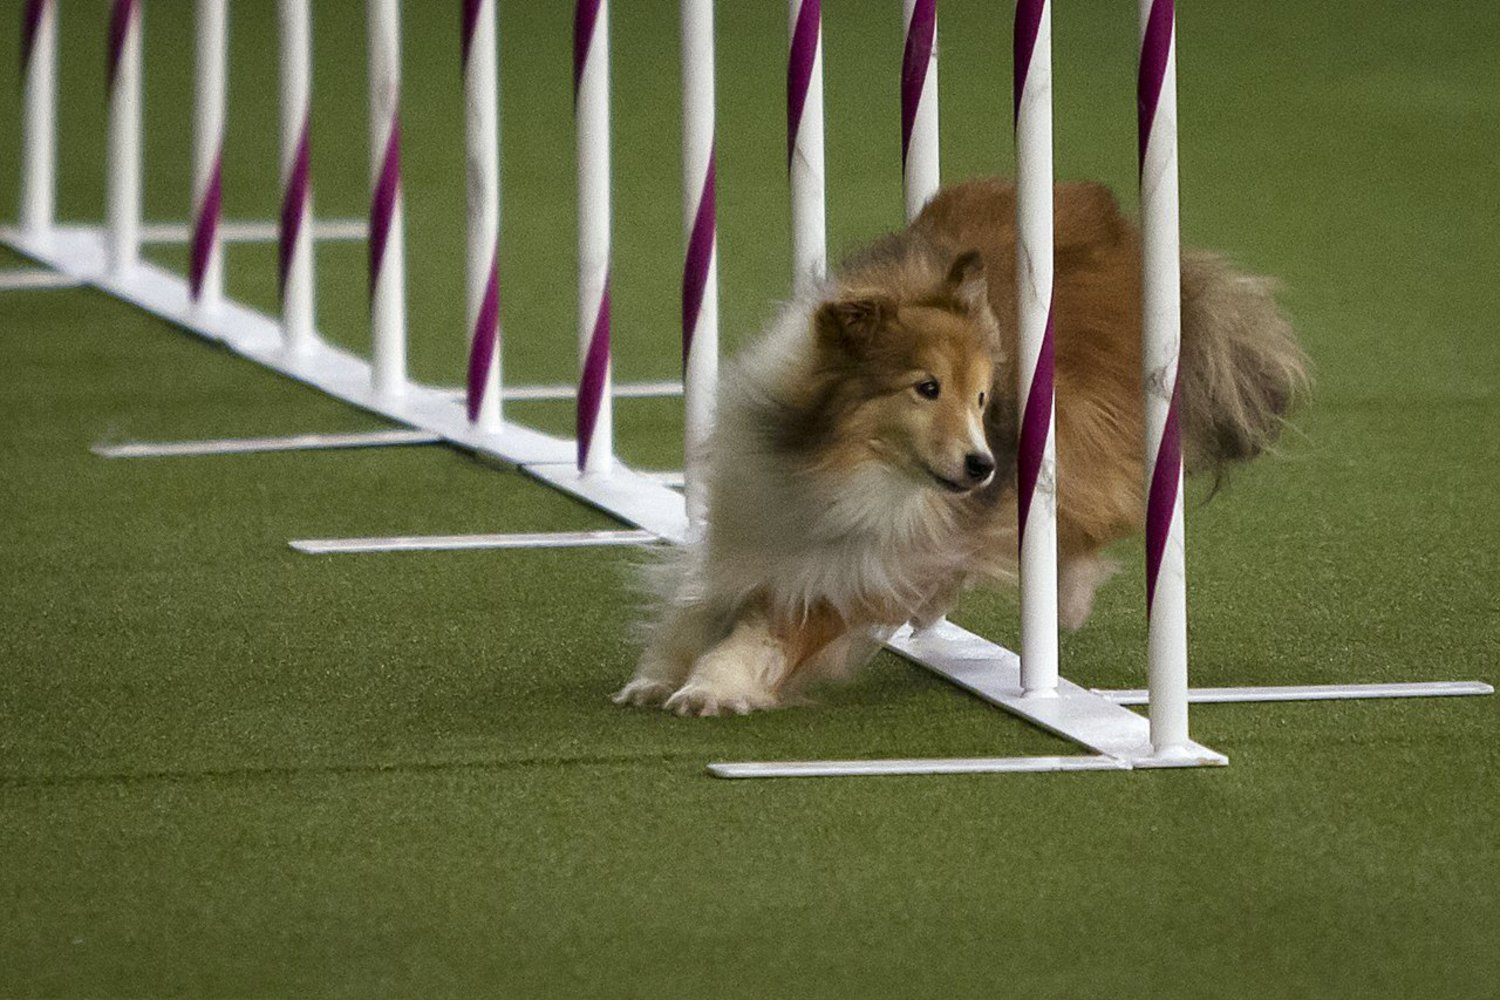 A dog competes in a Westminster show event on February 14, 2015.